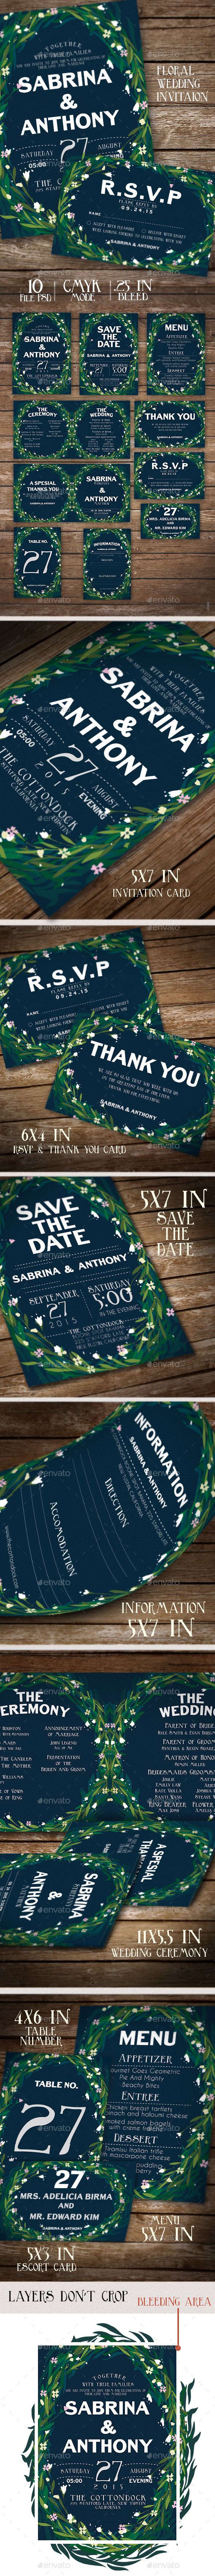 Floral Wedding Invitation Stationery - Weddings Cards & Invites